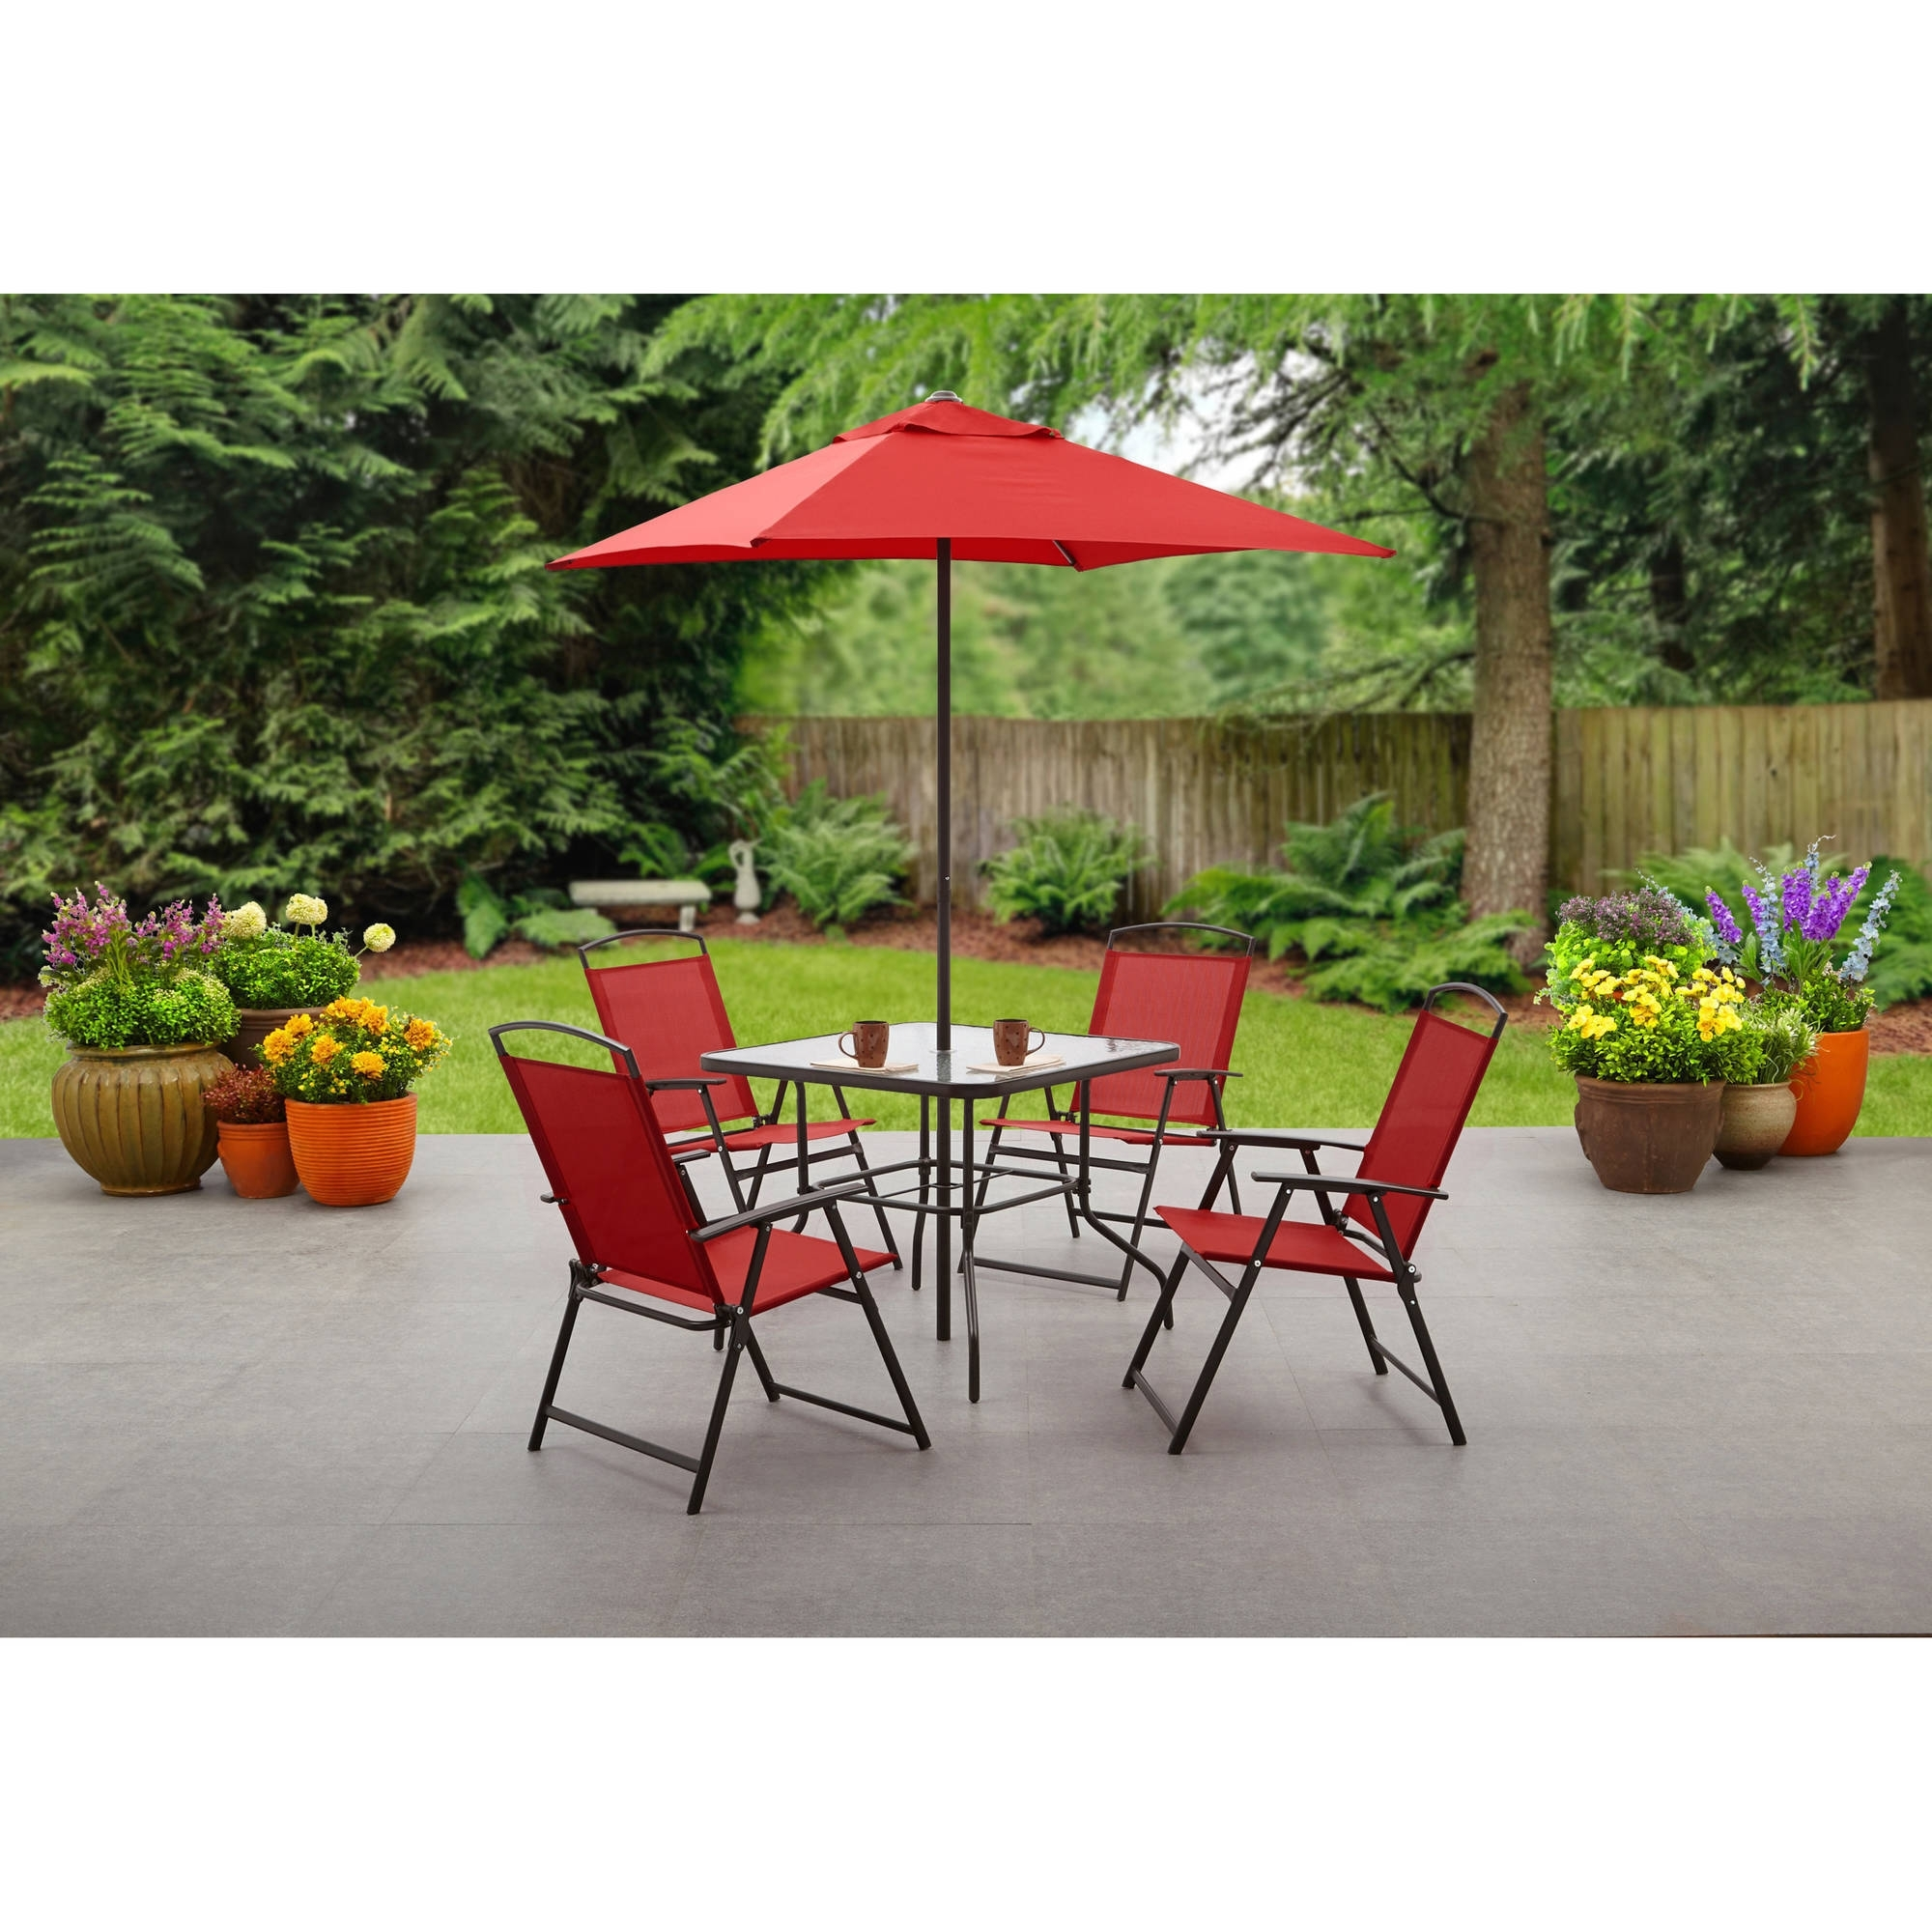 Latest Small Patio Tables With Umbrellas Within Mainstays Albany Lane 6 Piece Folding Dining Set, Multiple Colors (View 10 of 20)